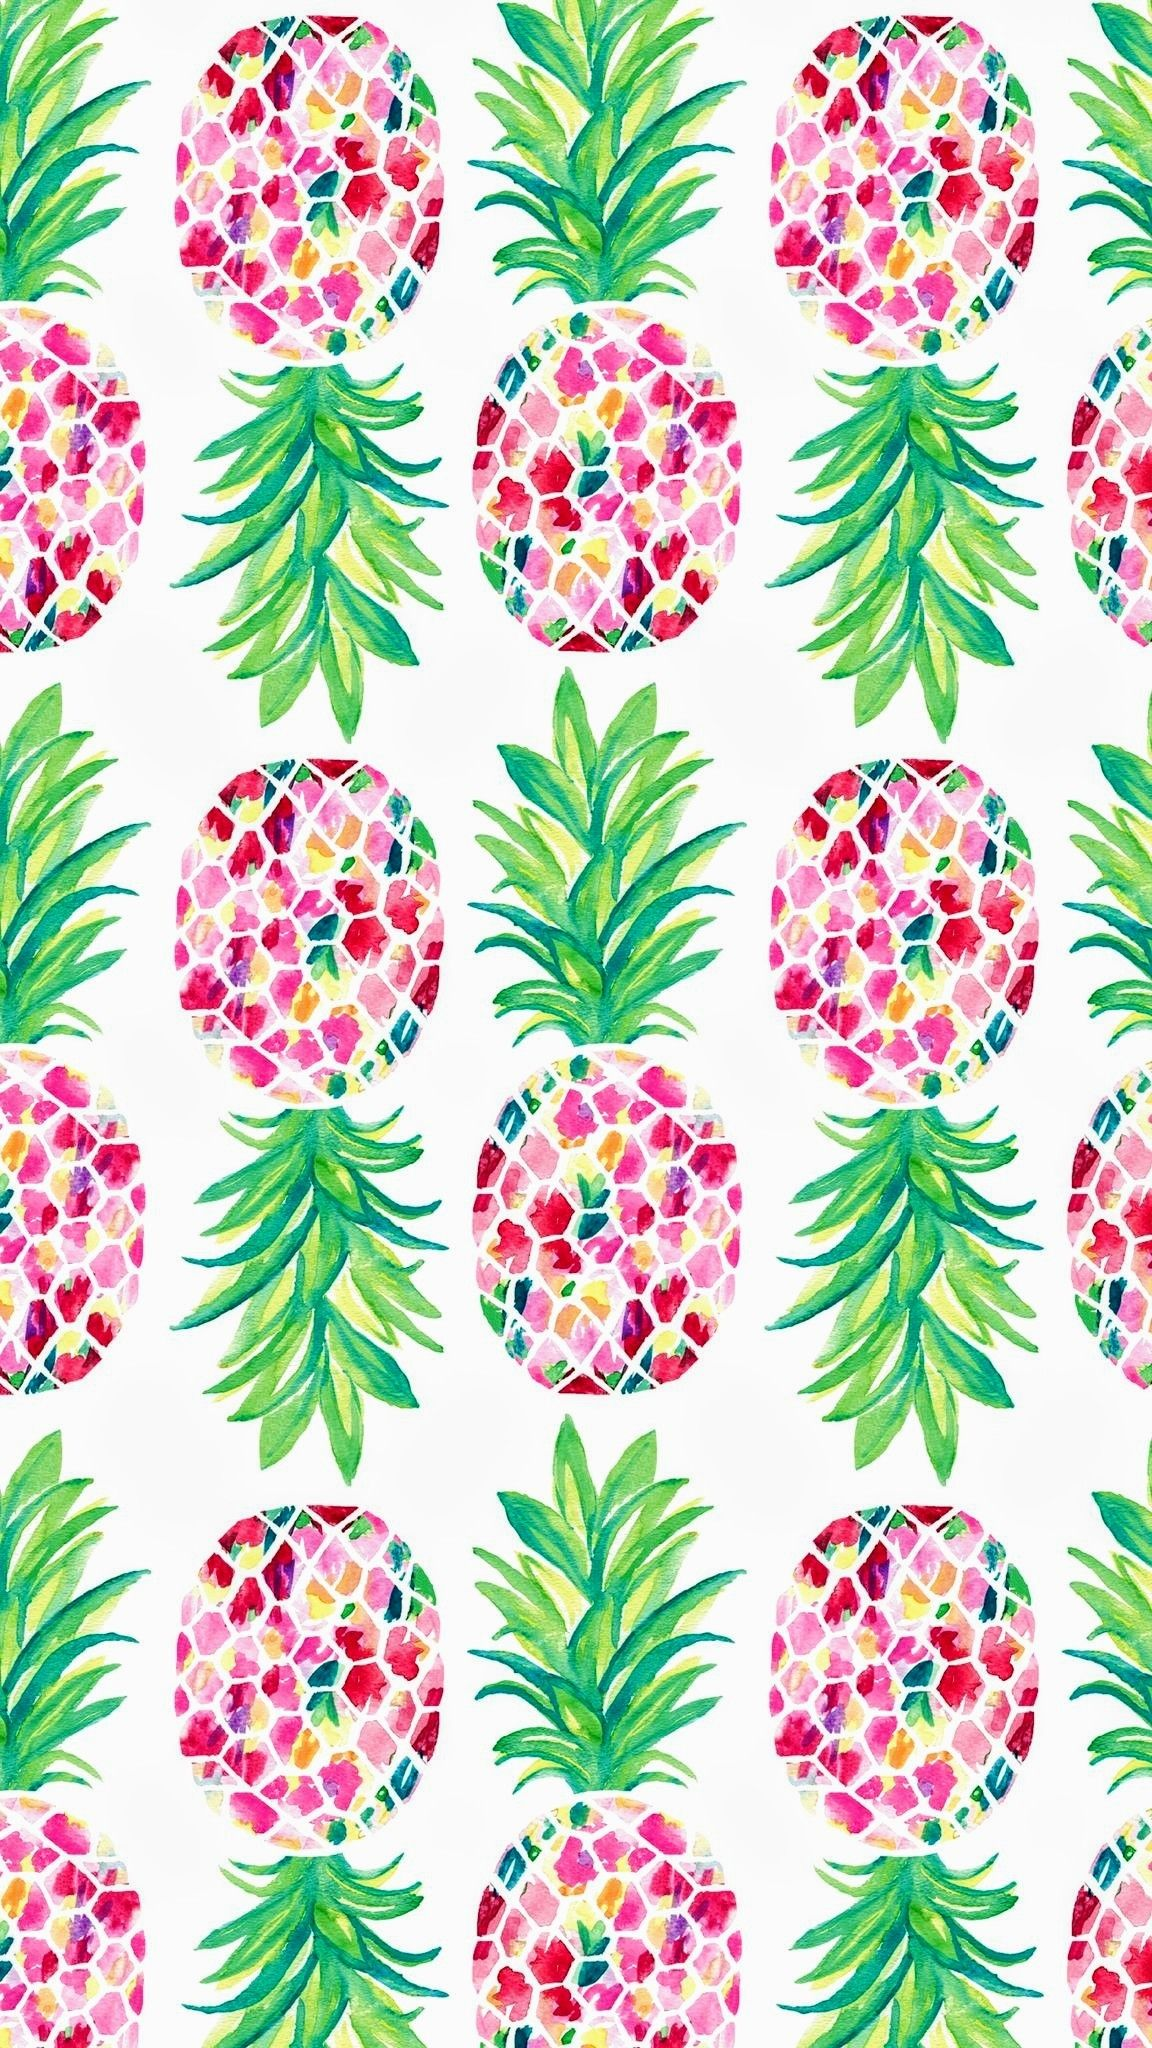 Pin By Alexa F On Wallpapers Pineapple Wallpaper Cute Pineapple Wallpaper Iphone Wallpaper